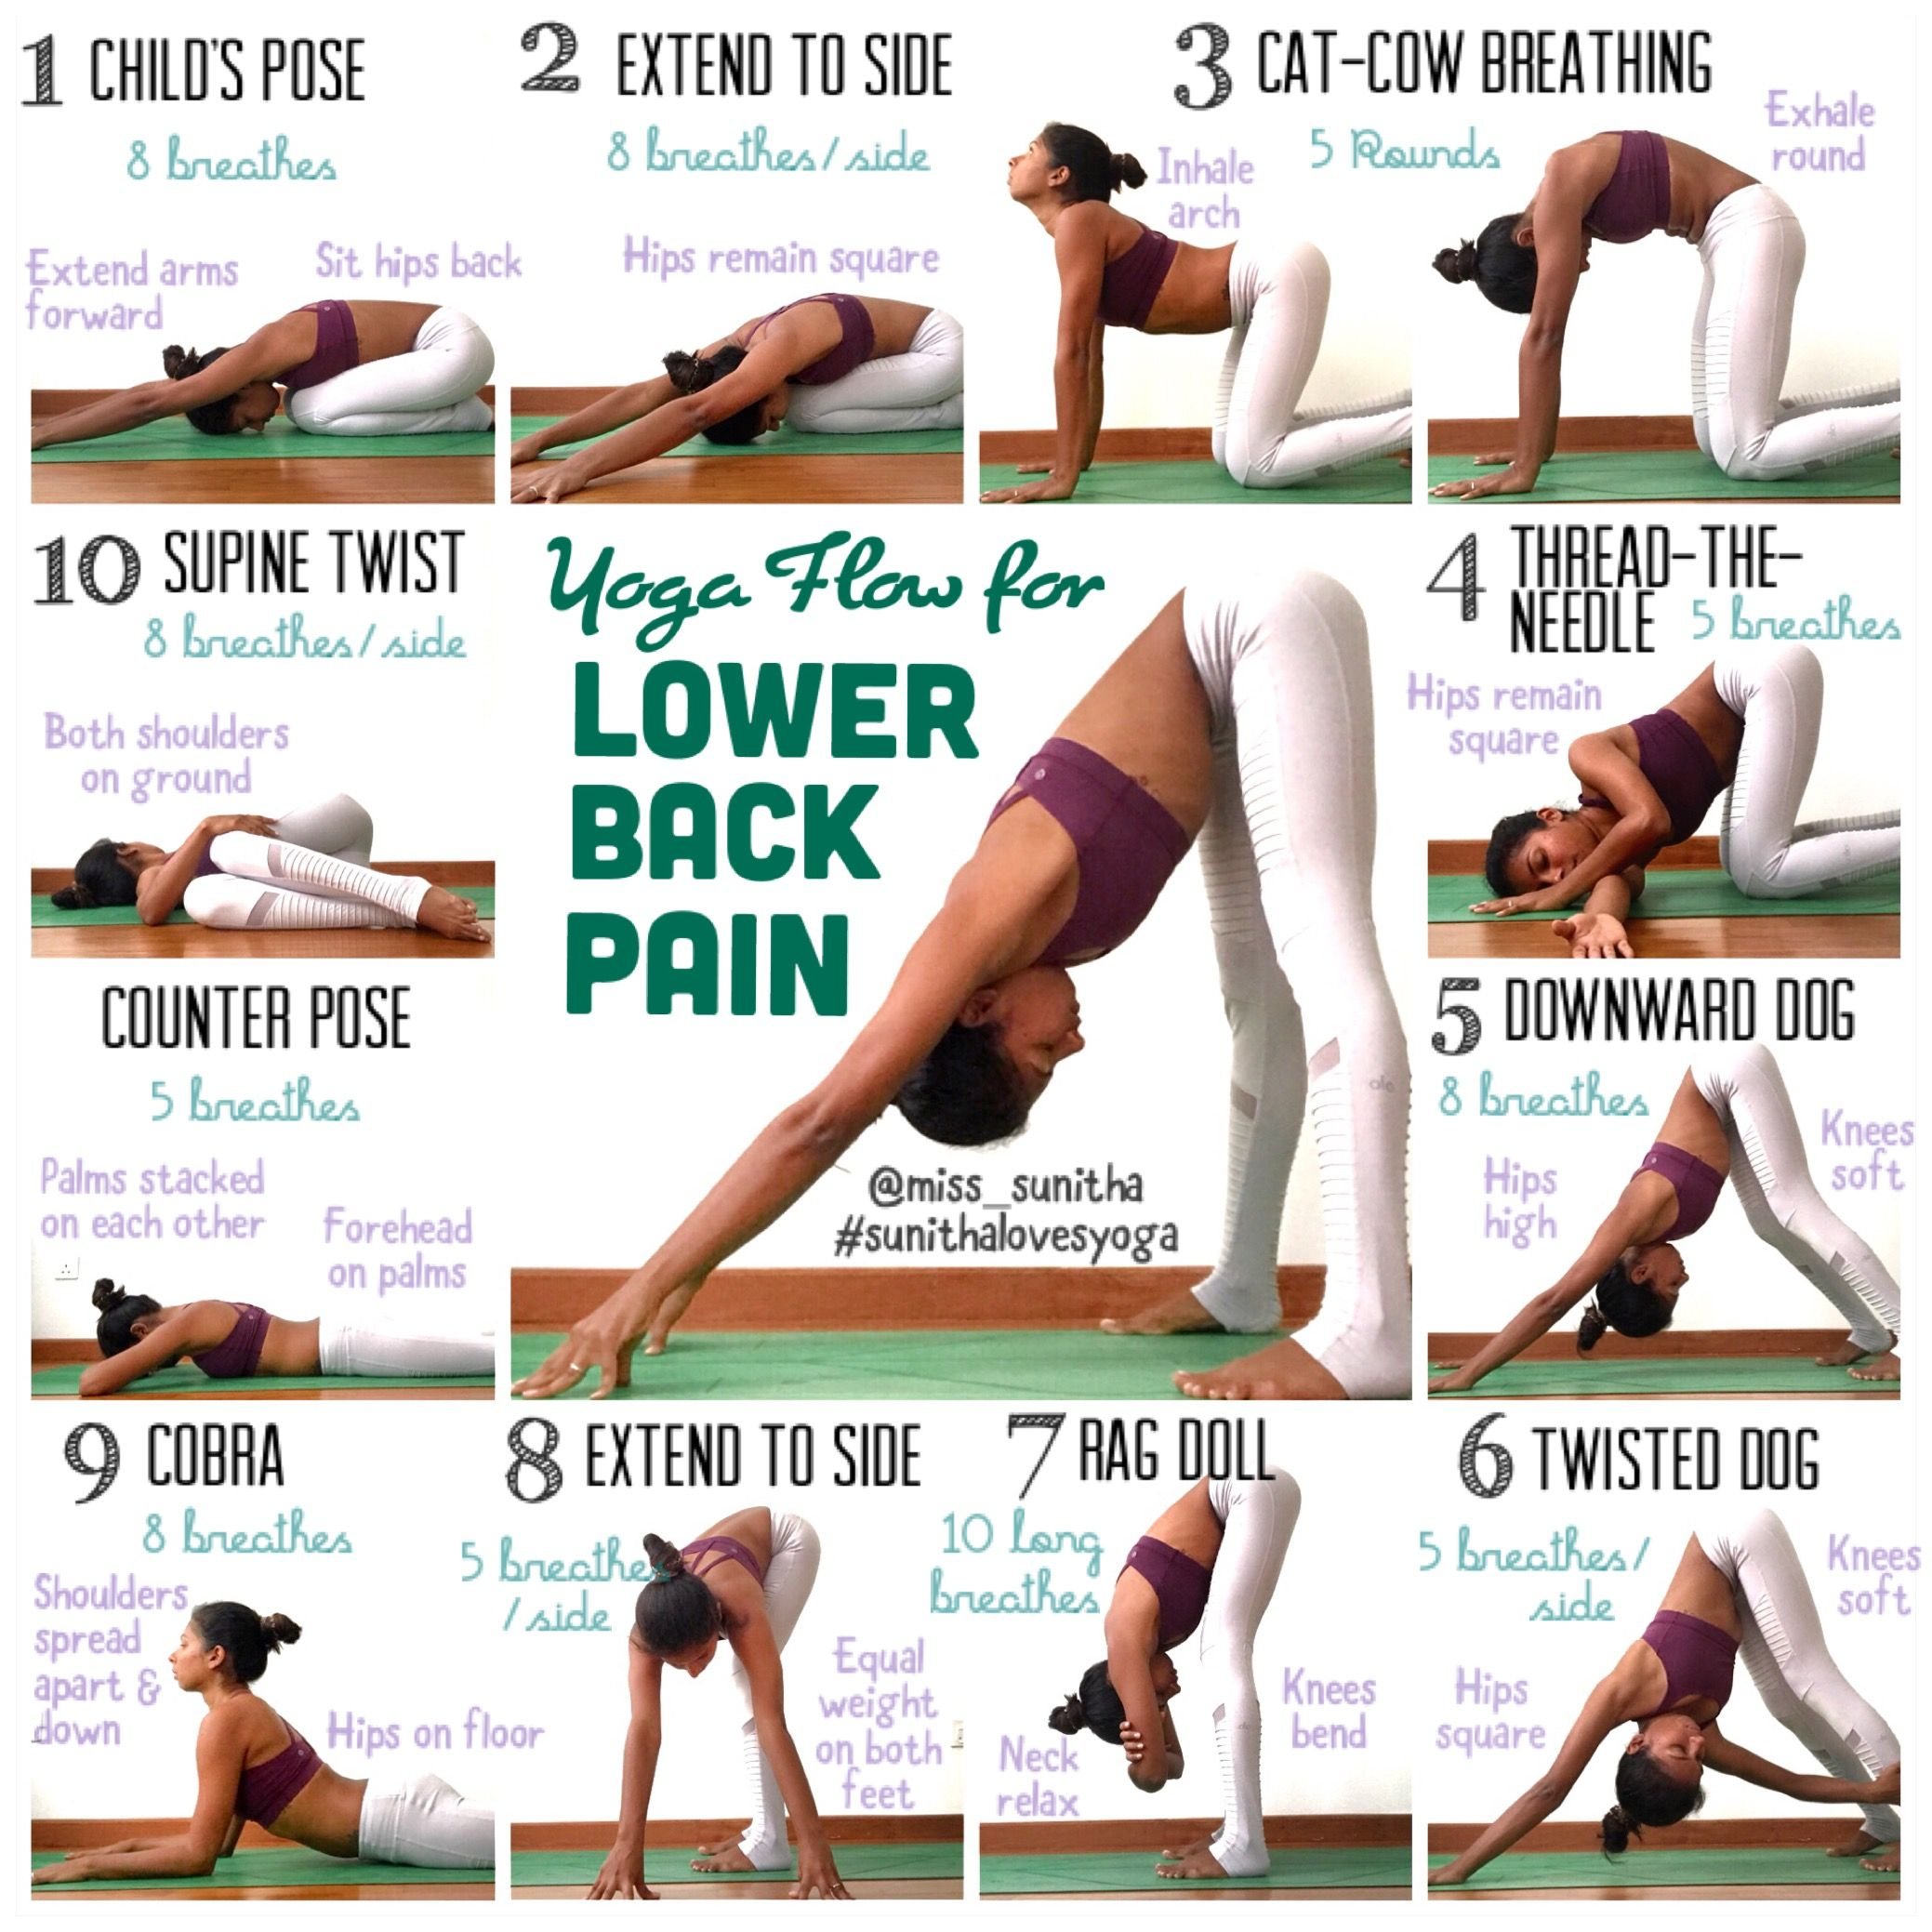 Yoga poses for lower back pain Check my Instagram account